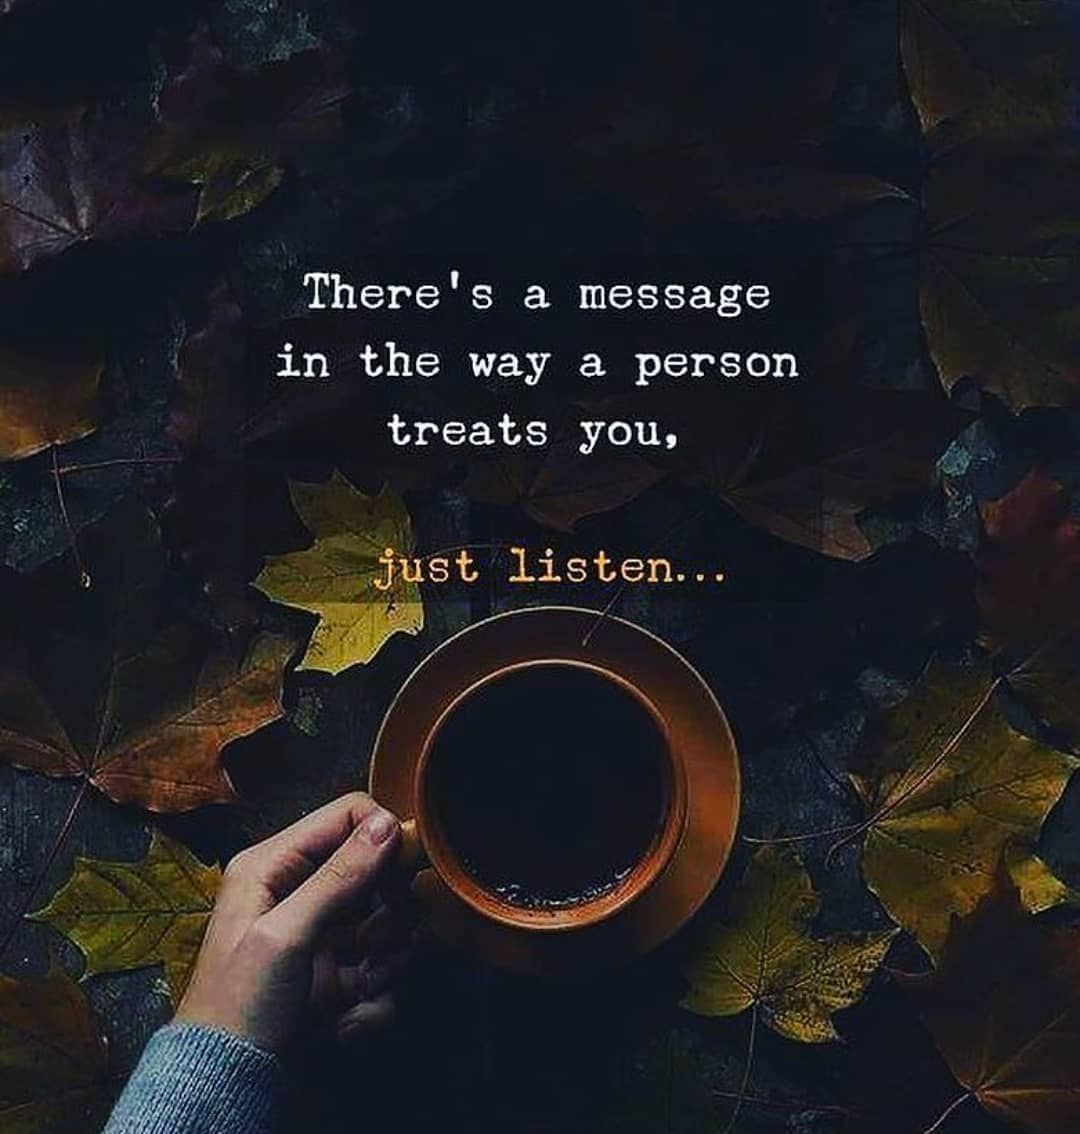 Famous Quotes There S A Message In The Way A Person Treats You Just Listen Kutipan Hidup Motivasi Inspirasional